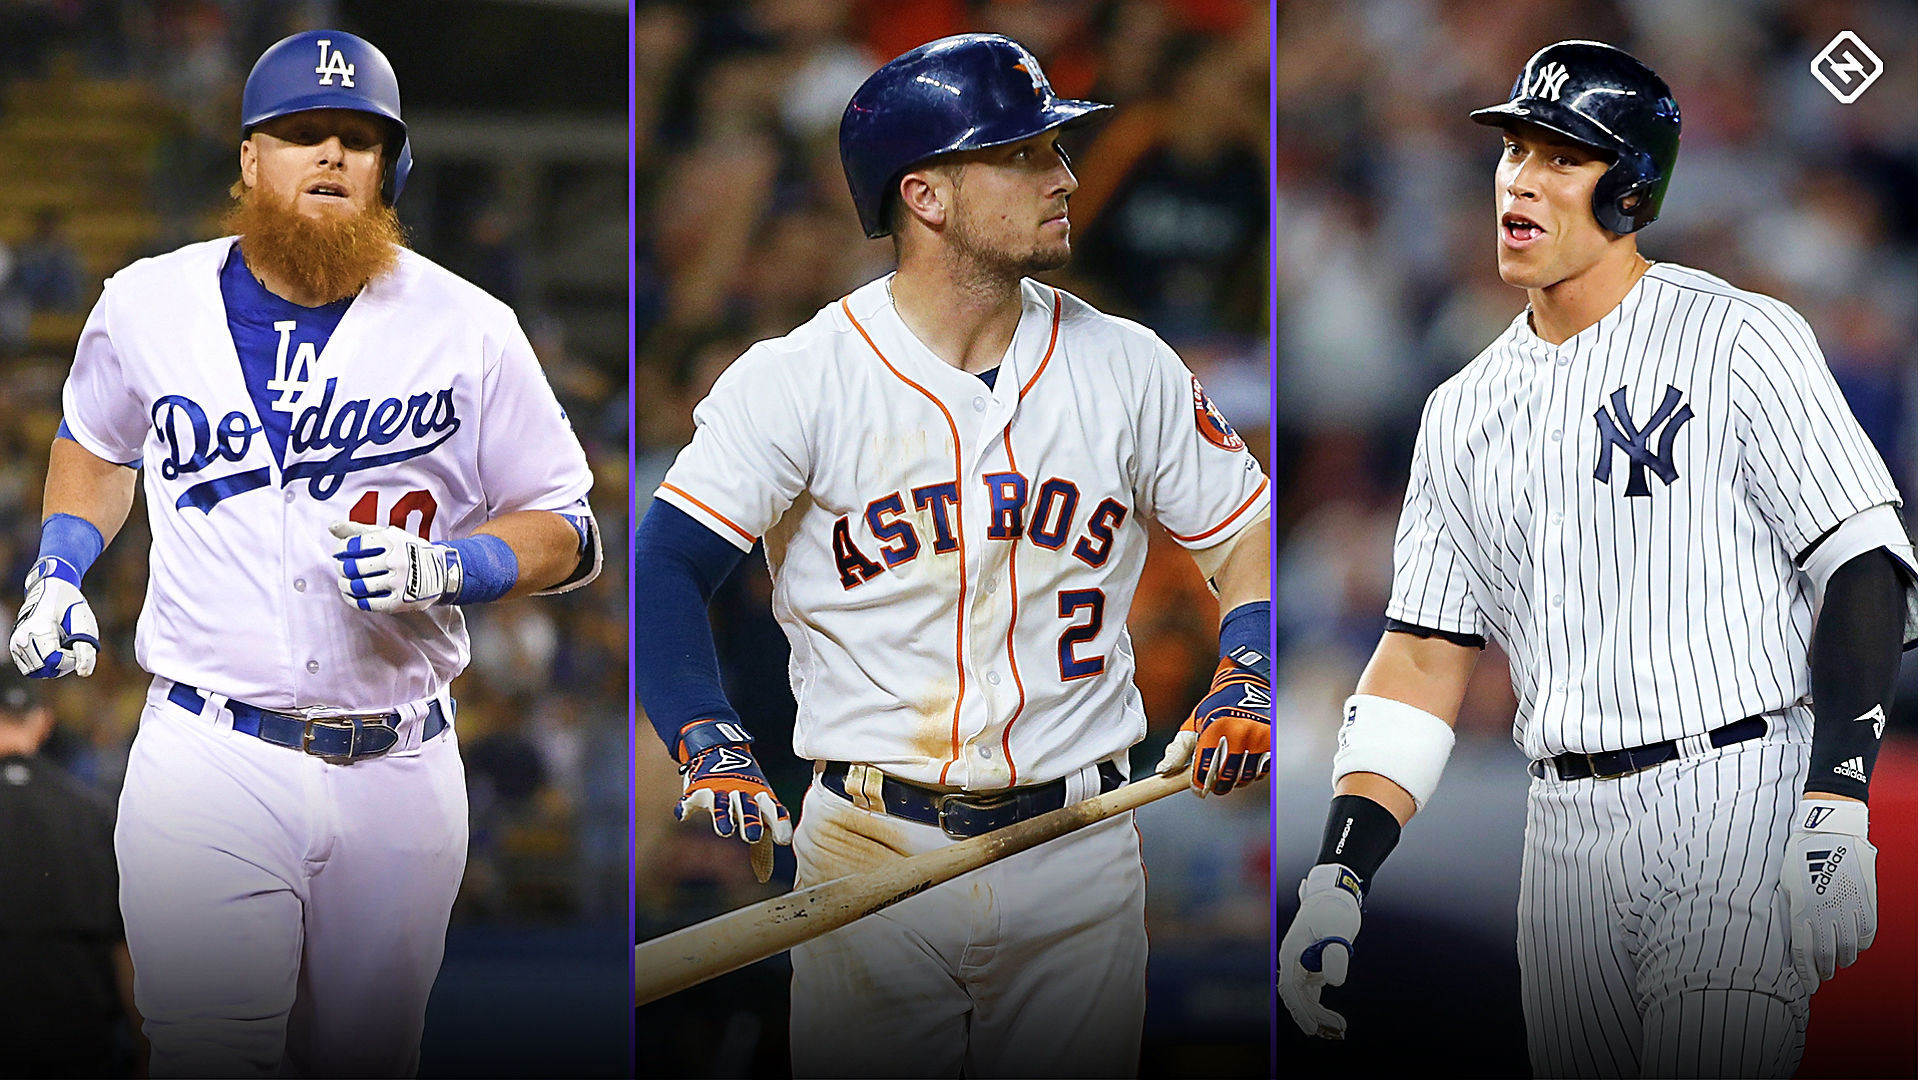 How many games in the MLB playoffs? - Answers